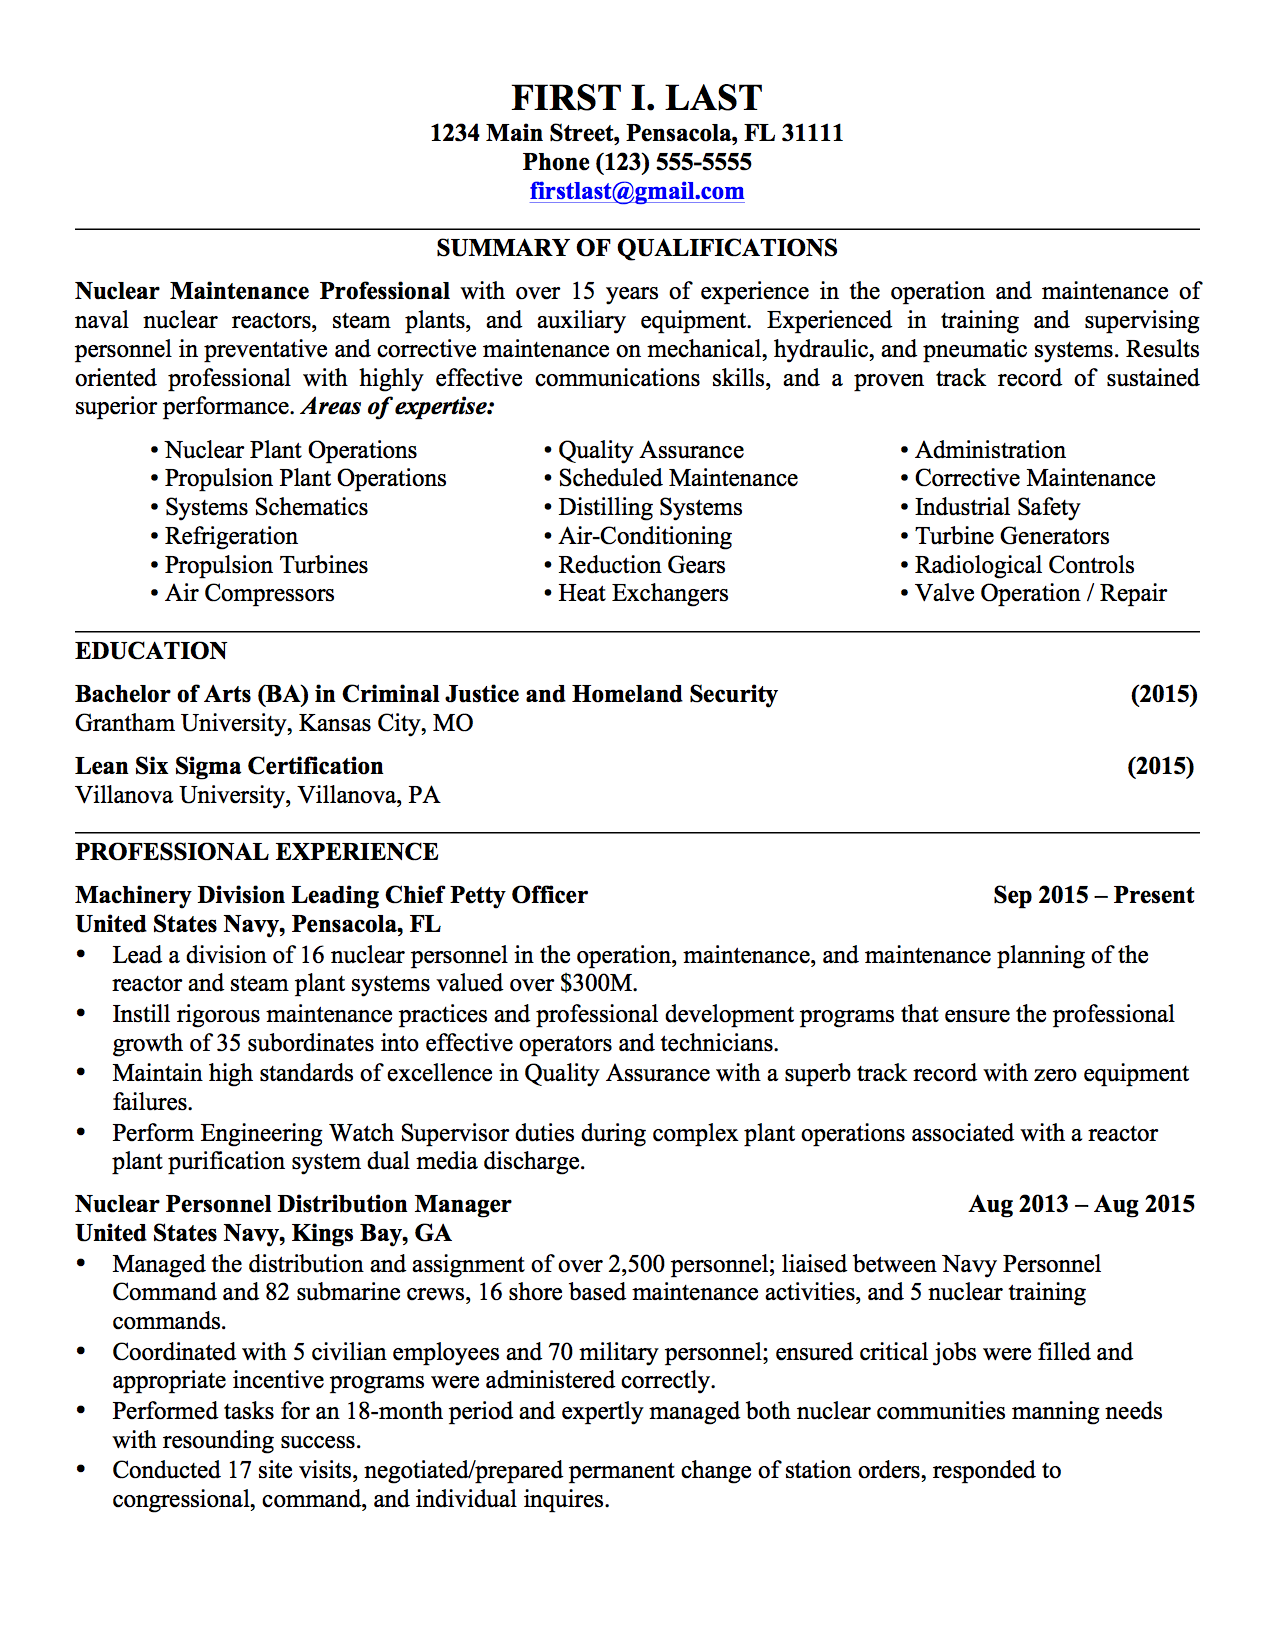 infantry resume - Army Resume Sample